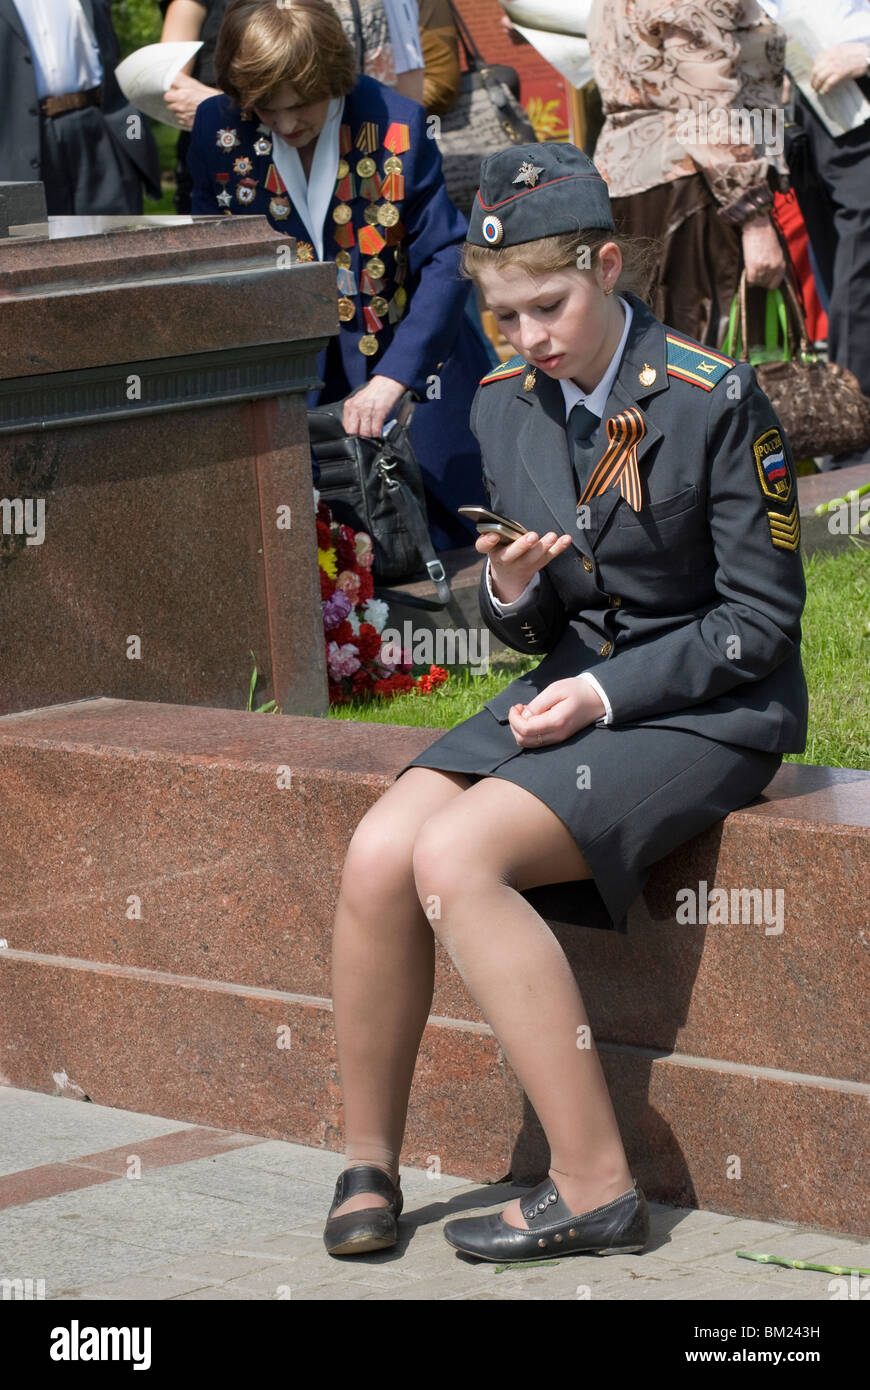 Think, that Russian girl police outfit